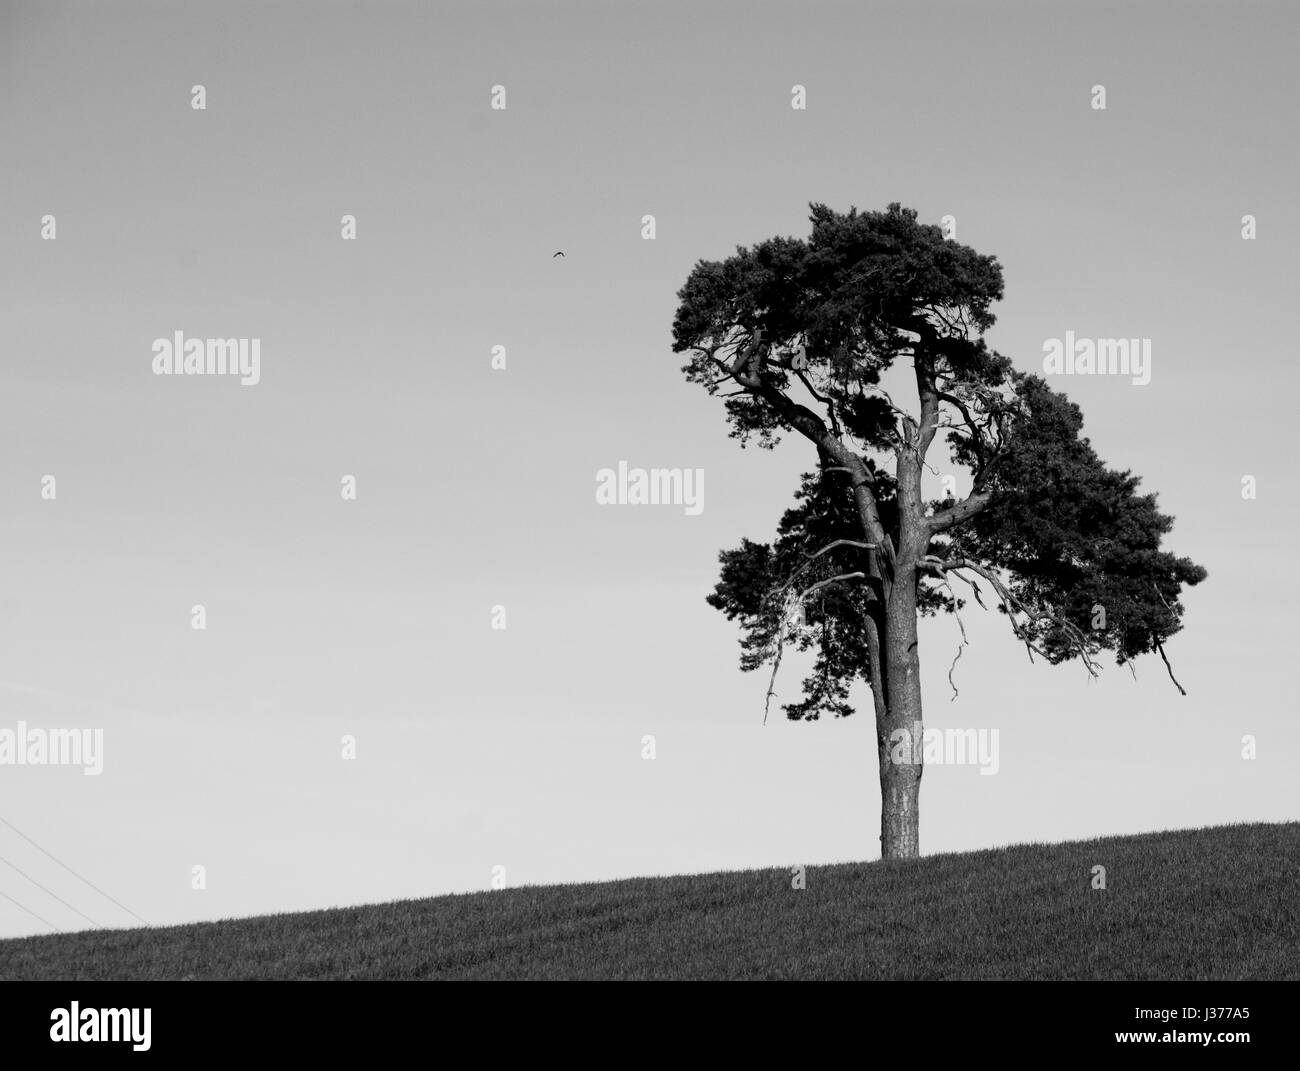 One lonely oak tree on a hill in the heart of England.  A farming landscape, UK. A wheat field in spring. Loneliness - Stock Image